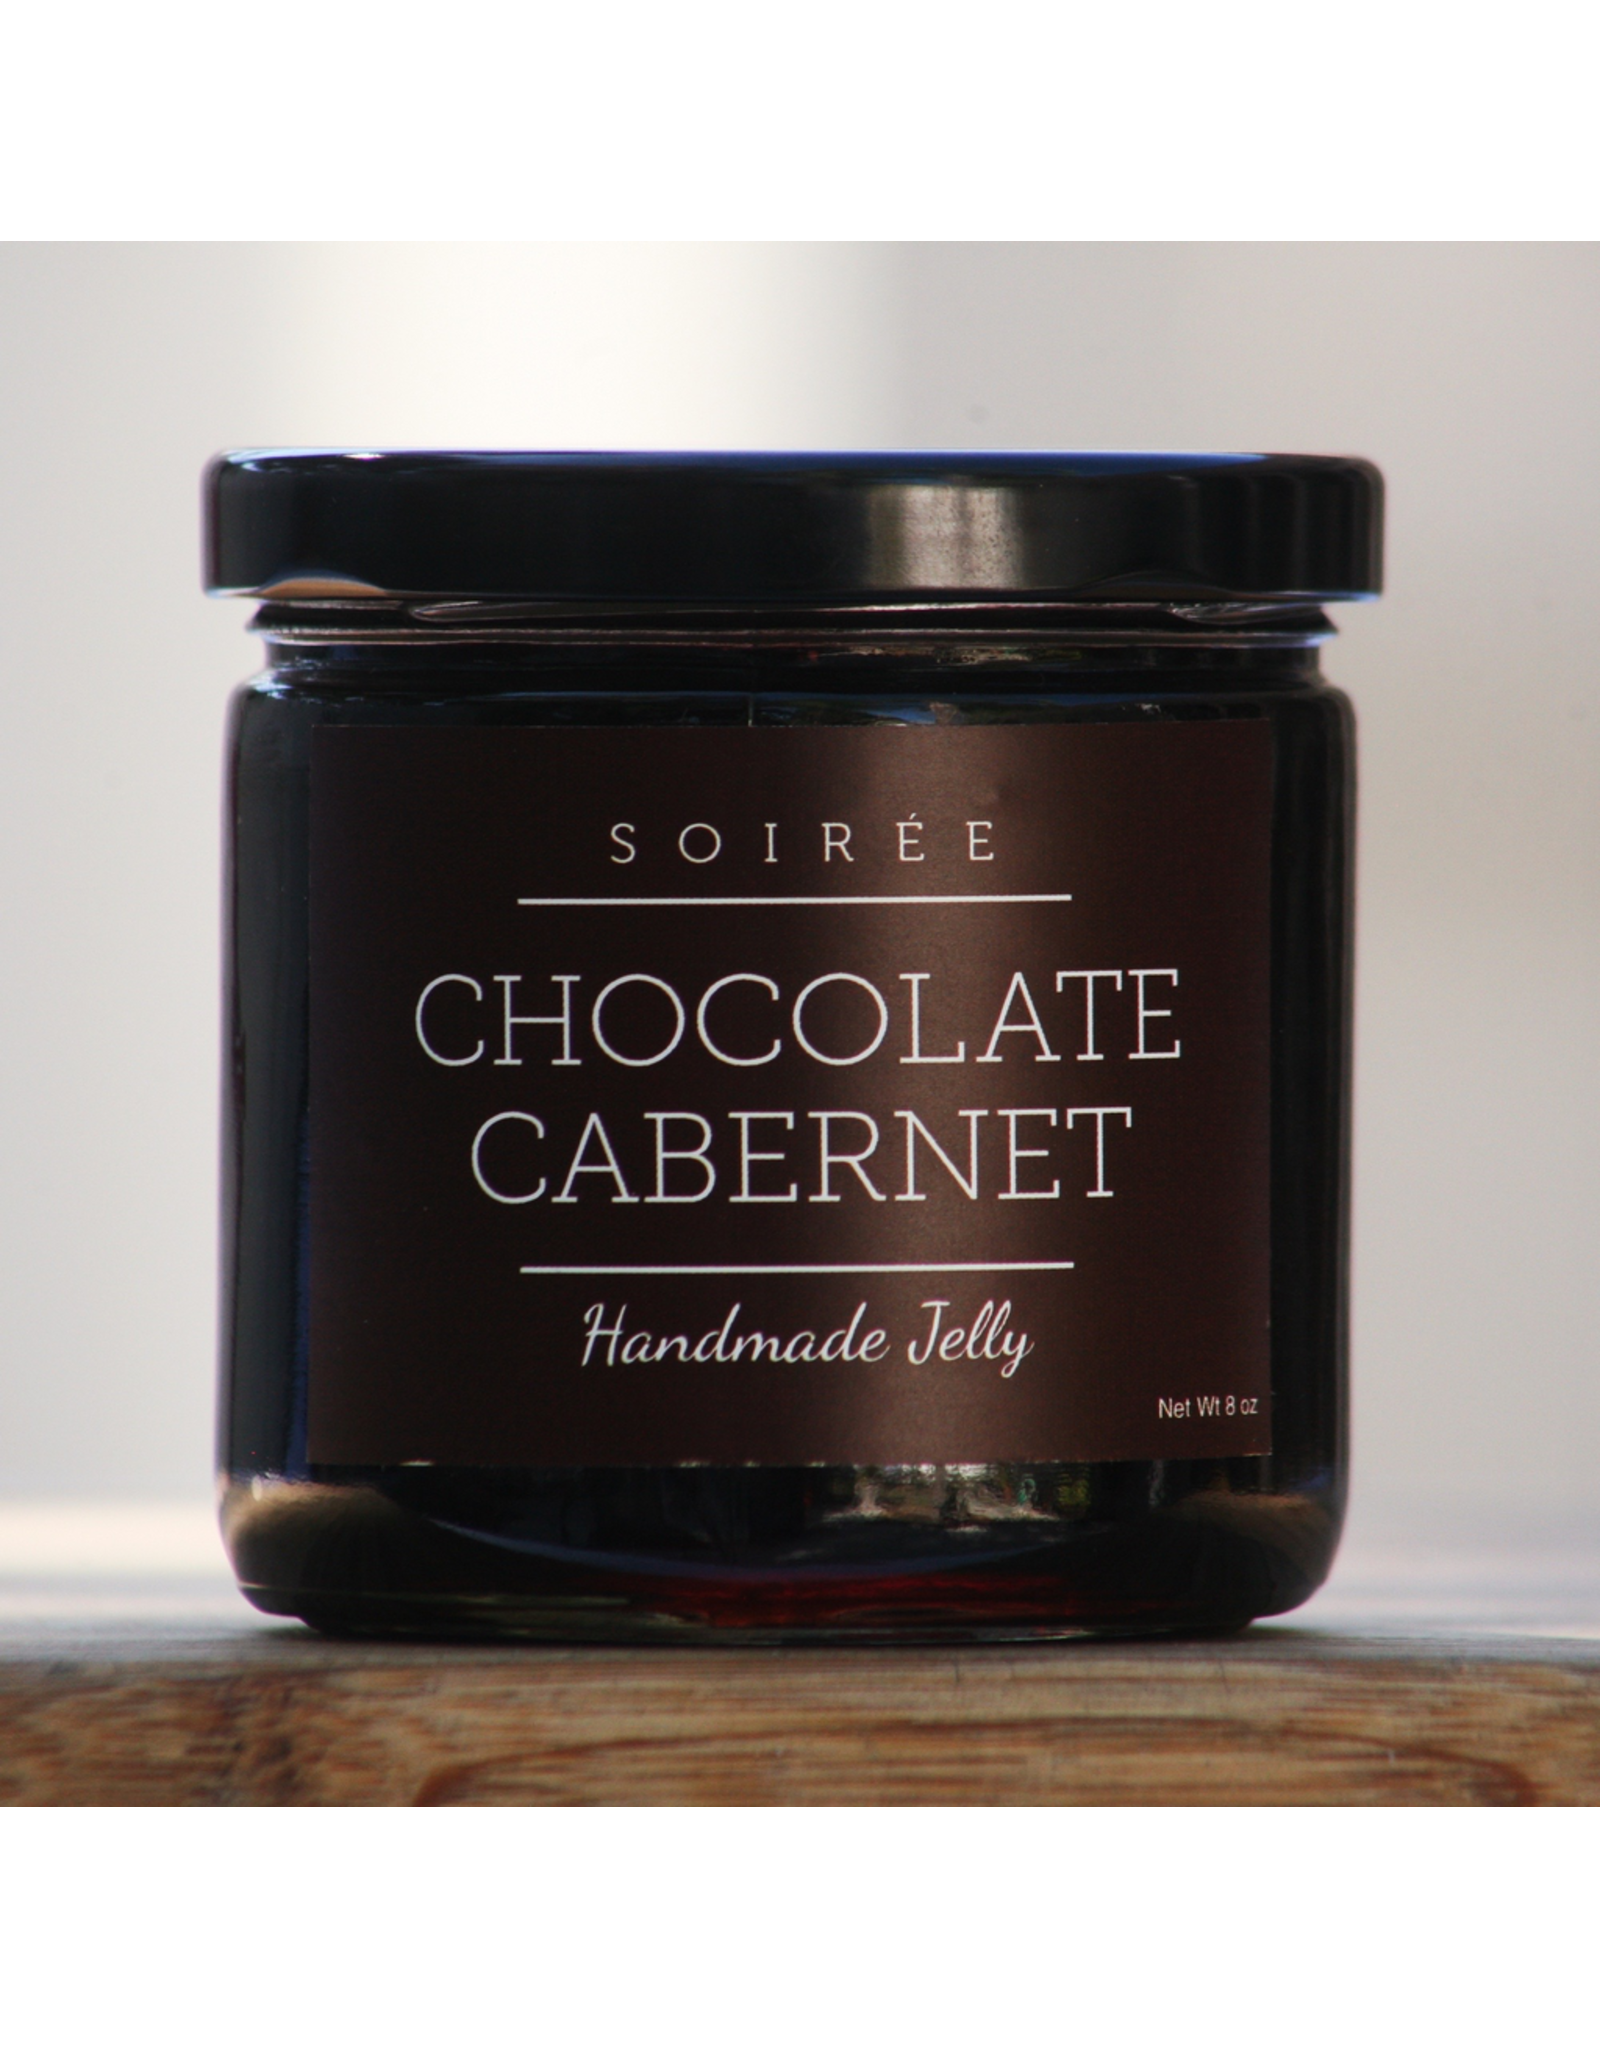 Specialty Foods Soiree, Chocolate Cabernet, Handmade Jelly, USA, 8oz.